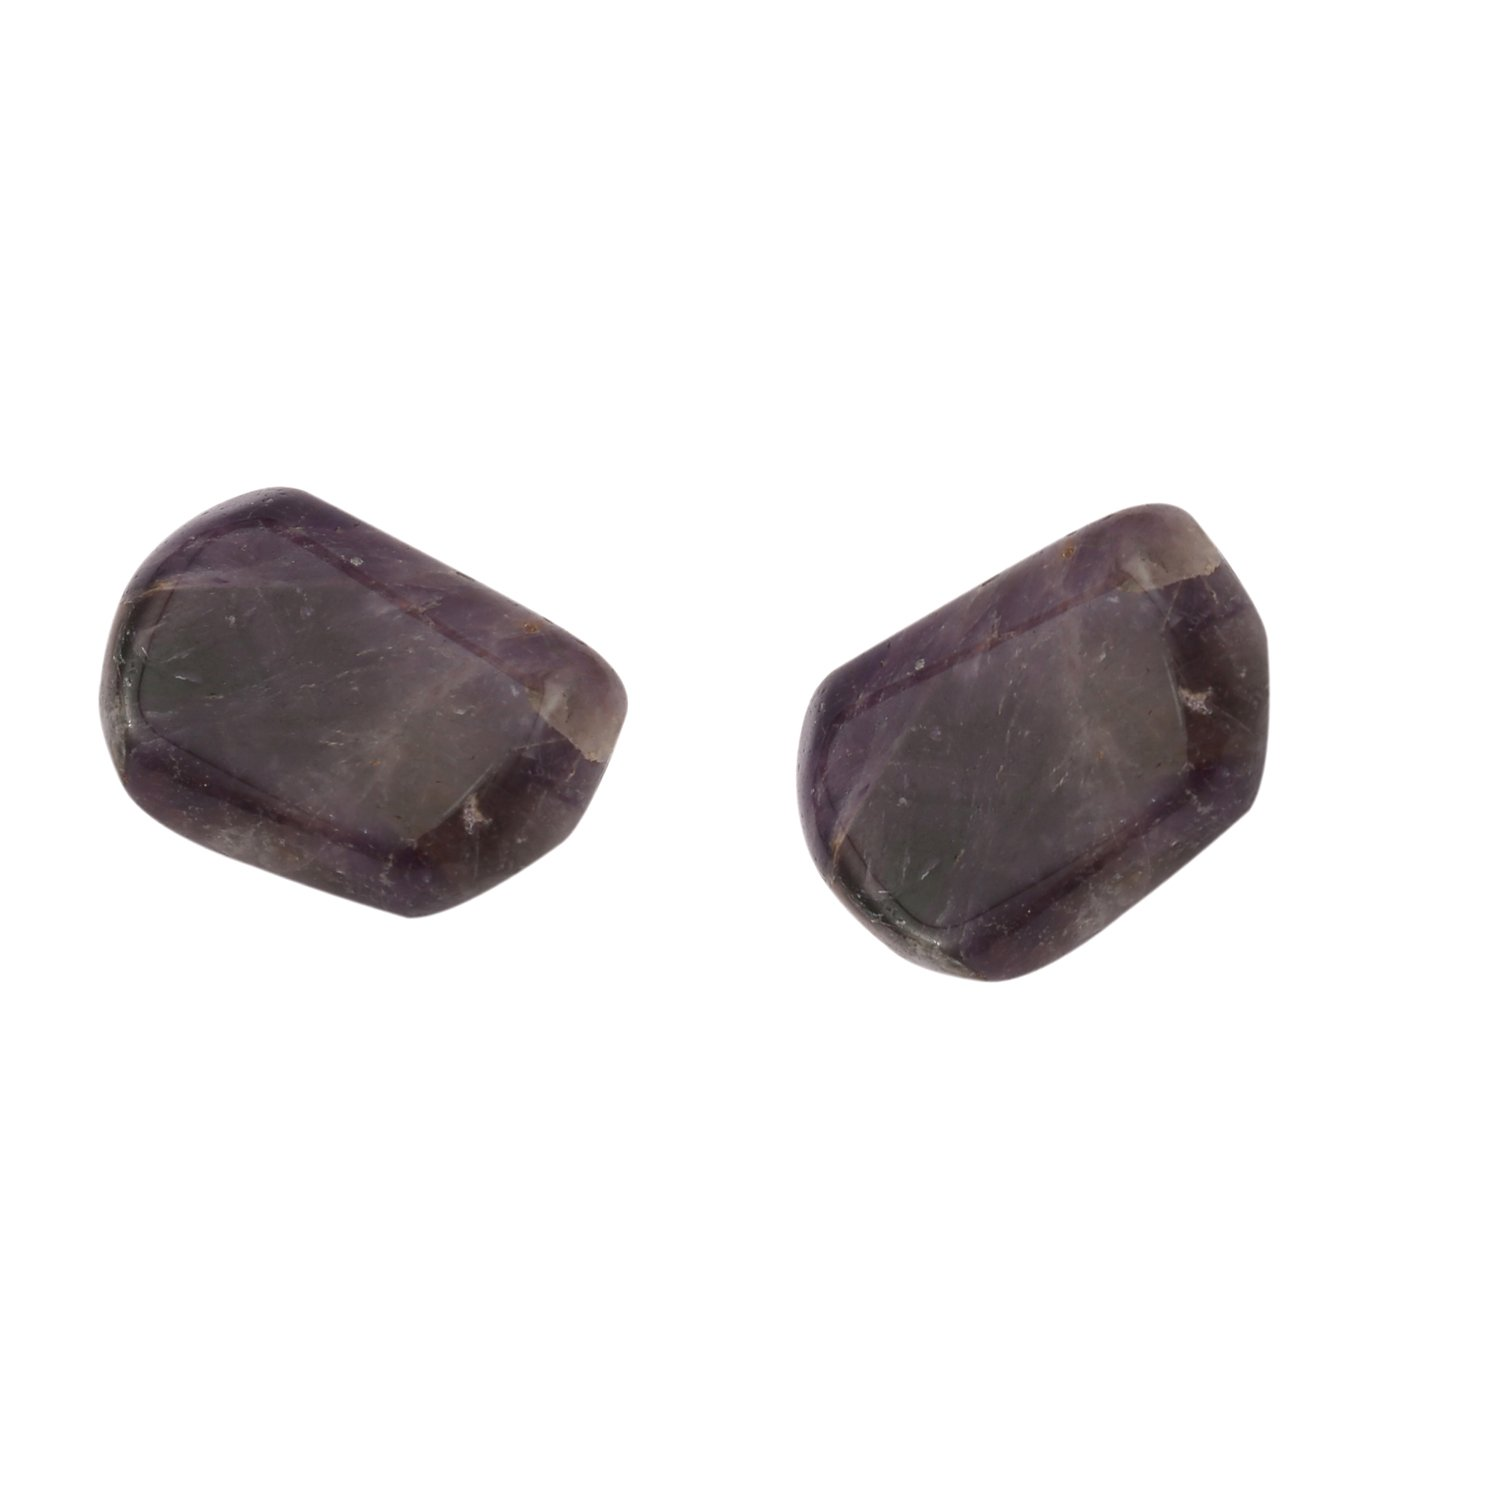 Aatm Healing Gemstone Amethyst Tumble Stone(25-30mm); (Set of 2) Aatm Collection;Healing Stone GAPC-103